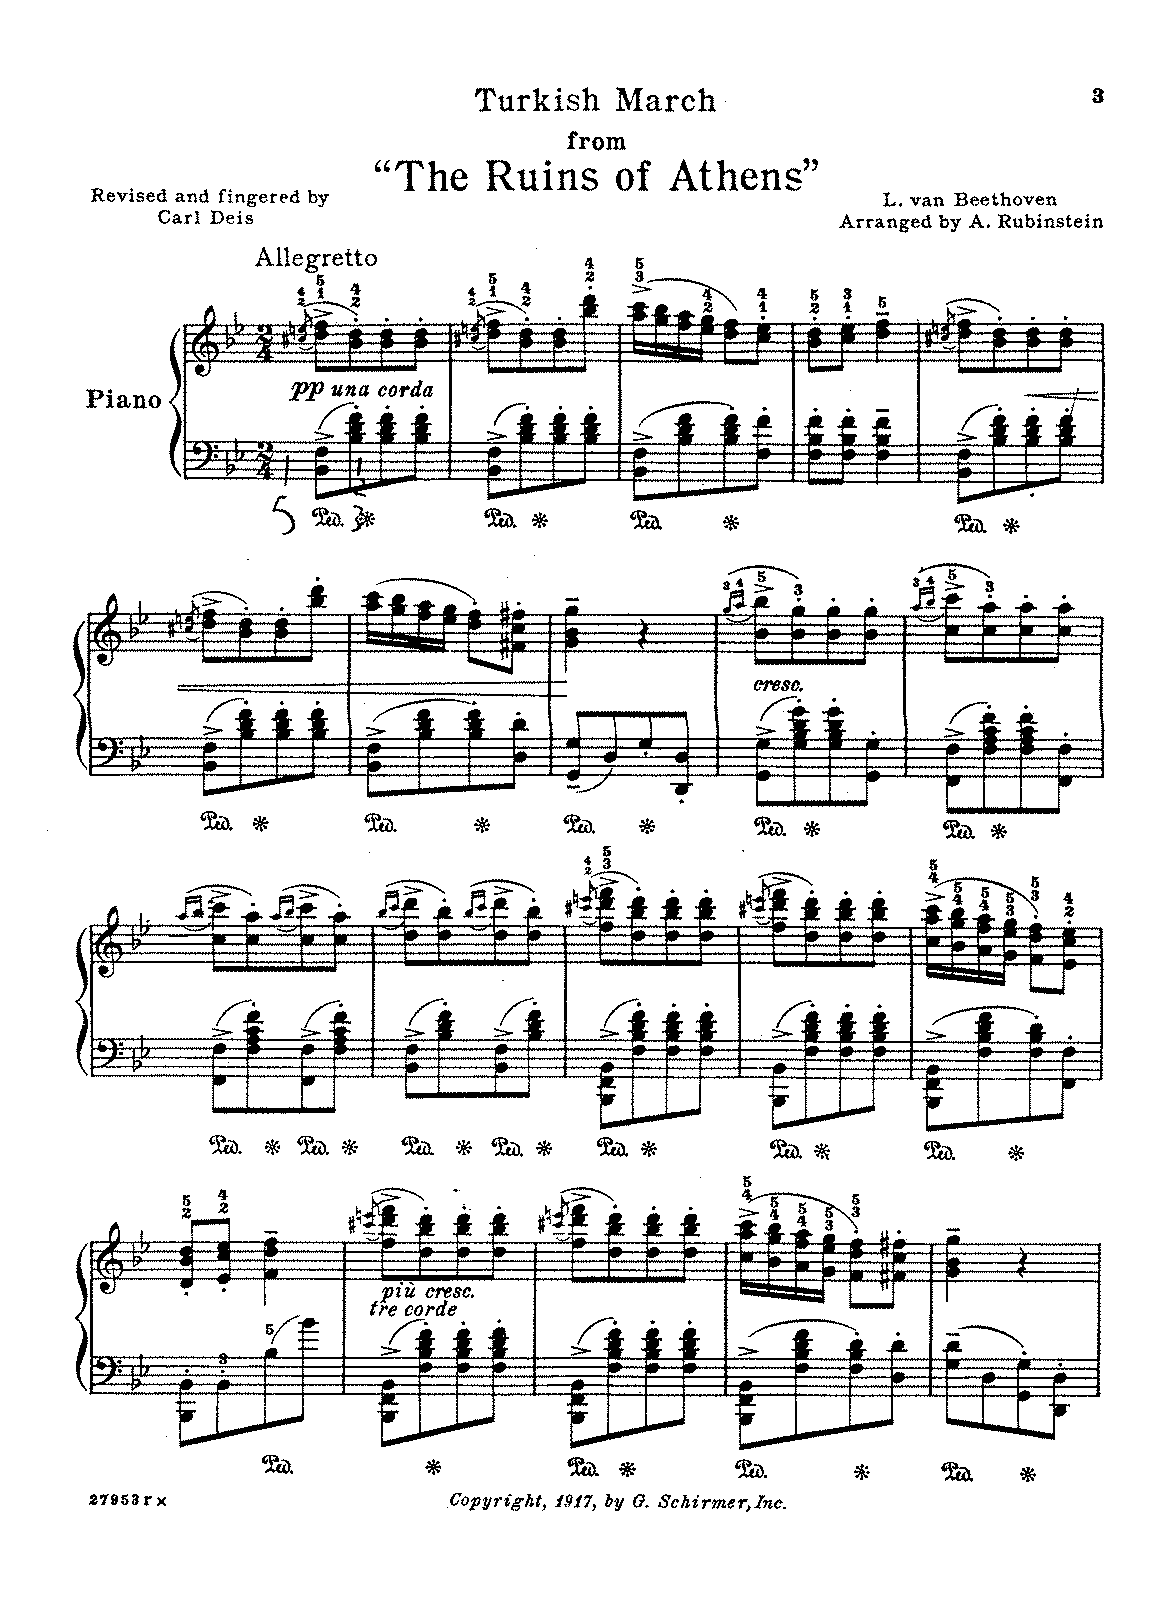 PMLP03071-Rubinstein Beethoven Turkish March.pdf